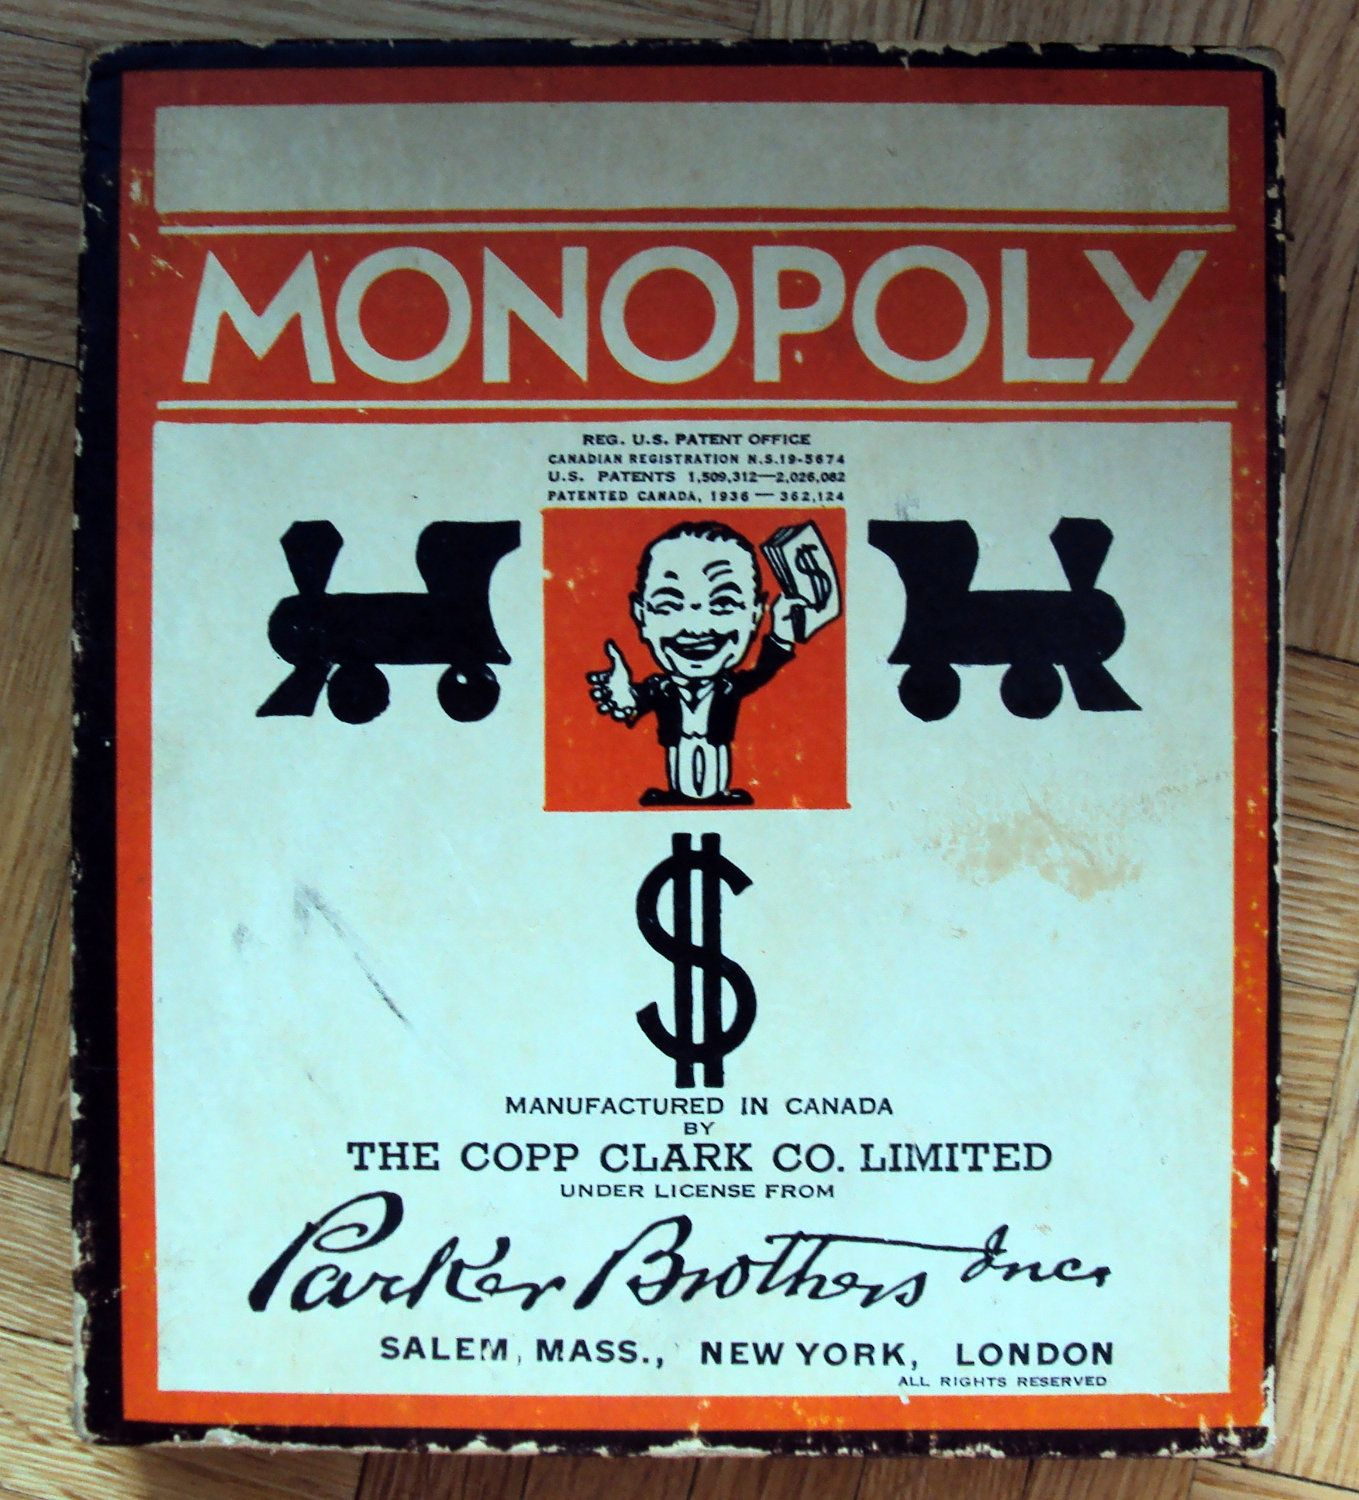 Antique monopoly game 1936 first canadian edition by copp clark ltd vintage board